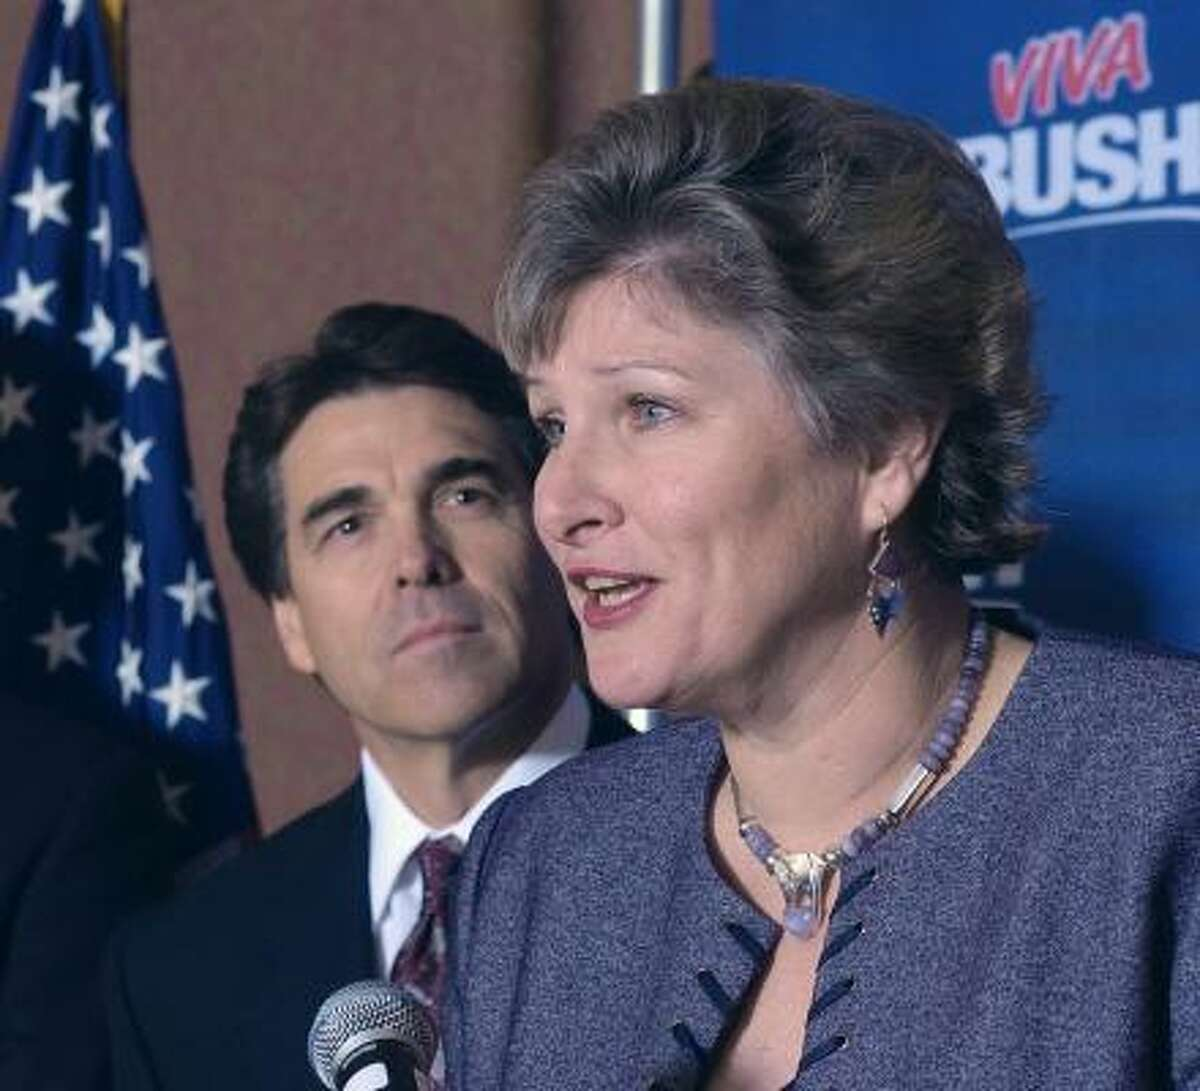 Flanked by Gov. Rick Perry, Karen Hughes, right, announces the Bush campaign's Texas leadership team during a news conference on Dec. 16, 2003.